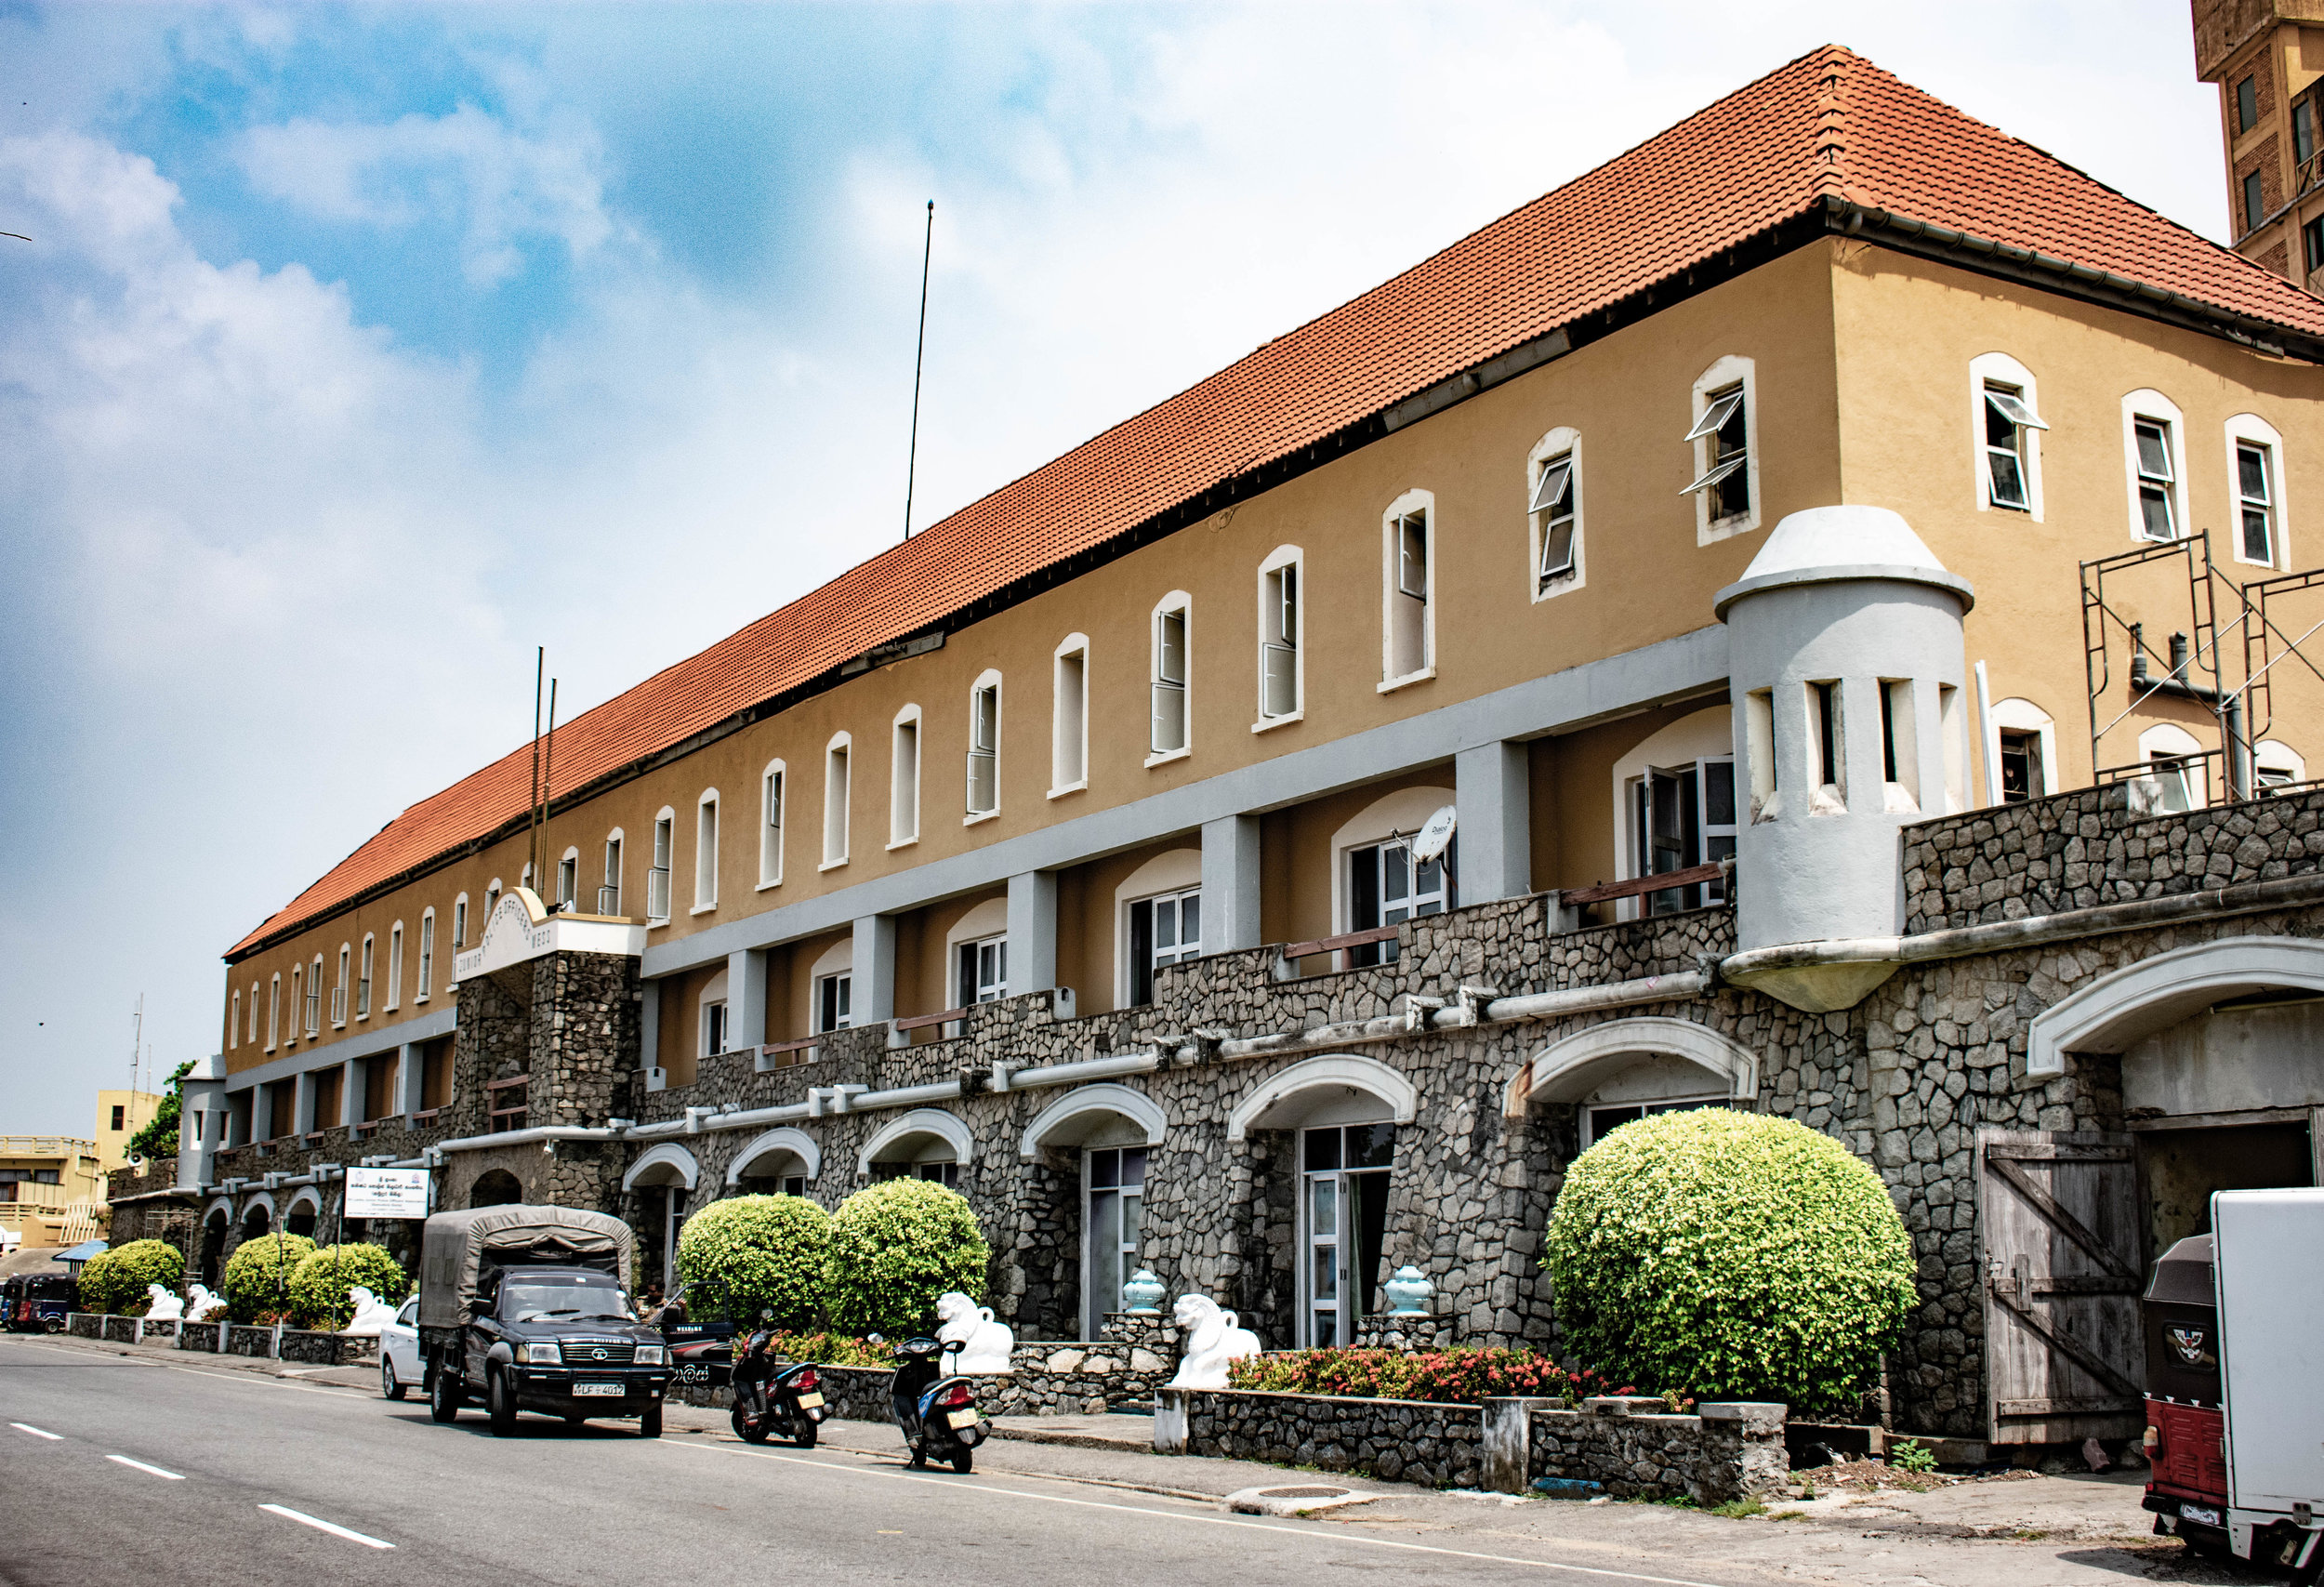 3_colombo_colonial_building_2.jpg